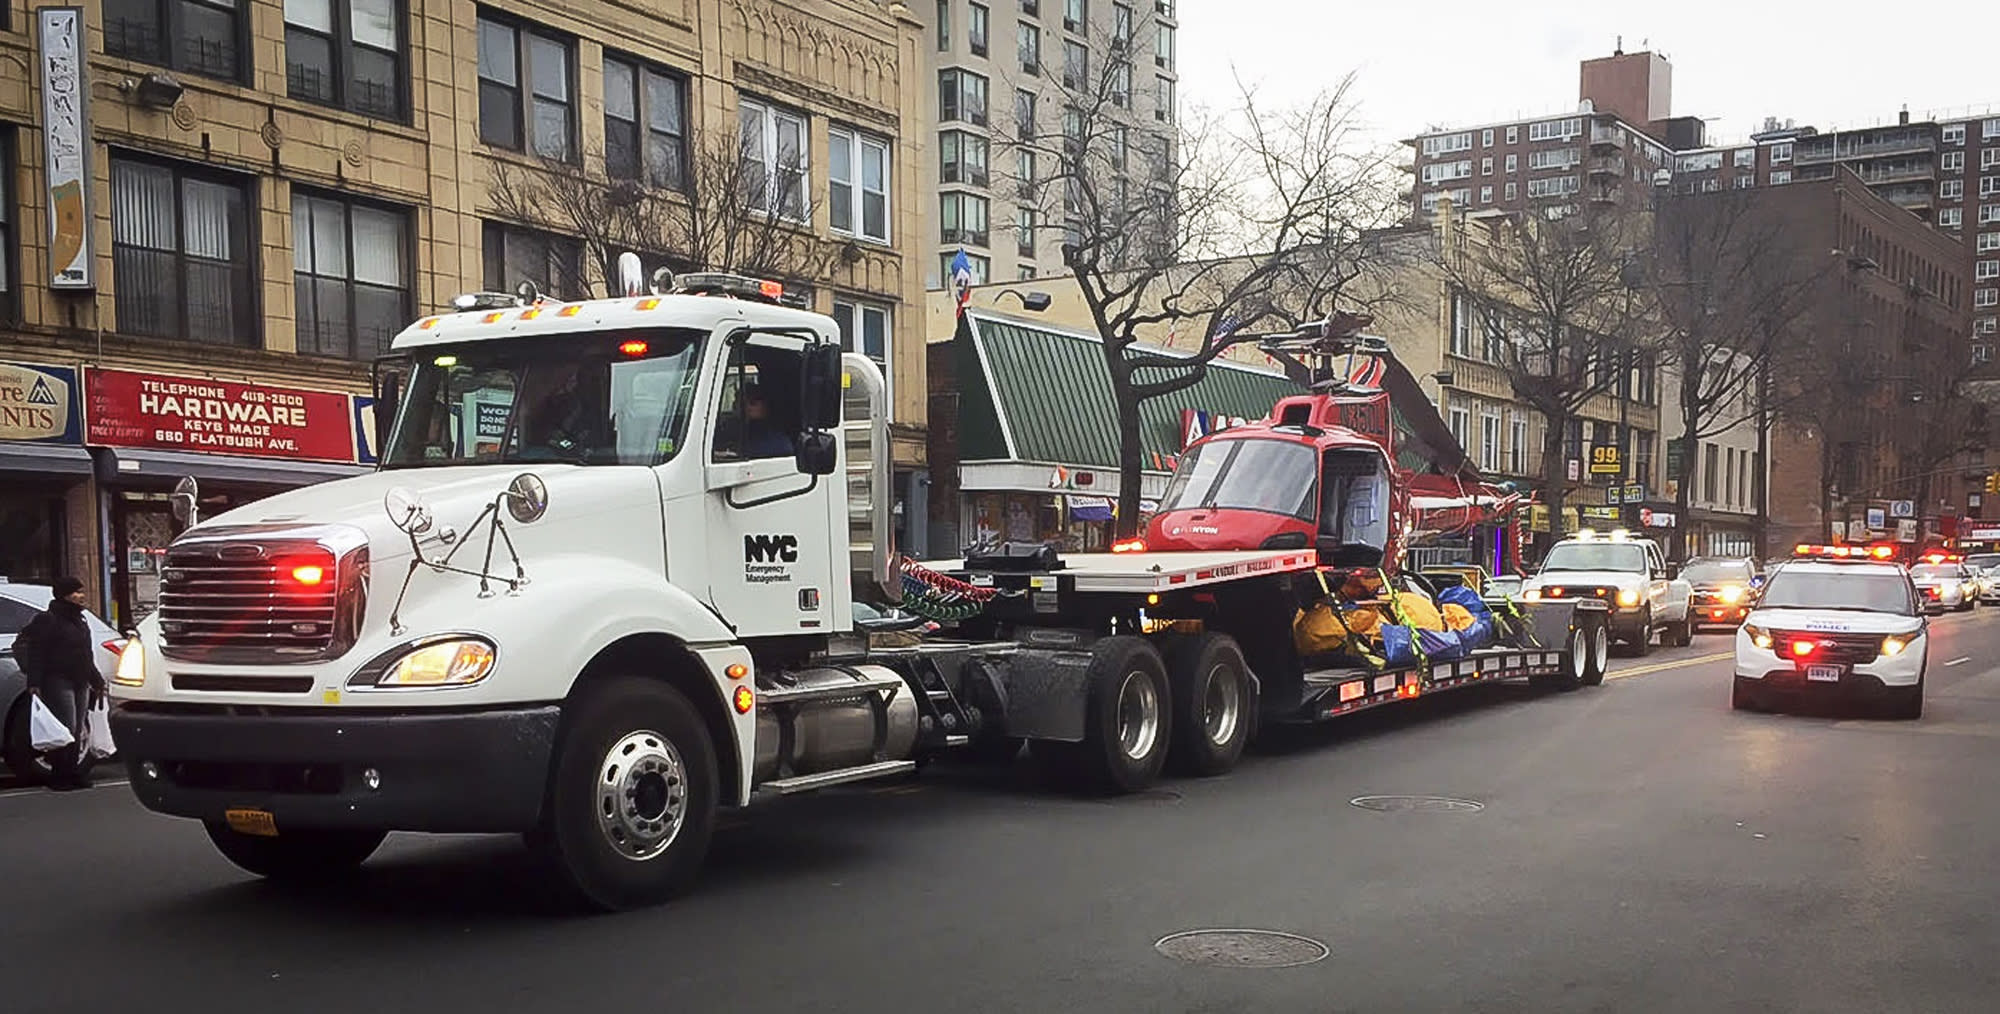 <p>A helicopter that crashed in New York's East River killing five passengers is carried on a trailer truck with a police escort, along Flatbush Avenue in Brooklyn Borough of New York, March 12, 2018. (Photo: Bebeto Matthews/AP) </p>